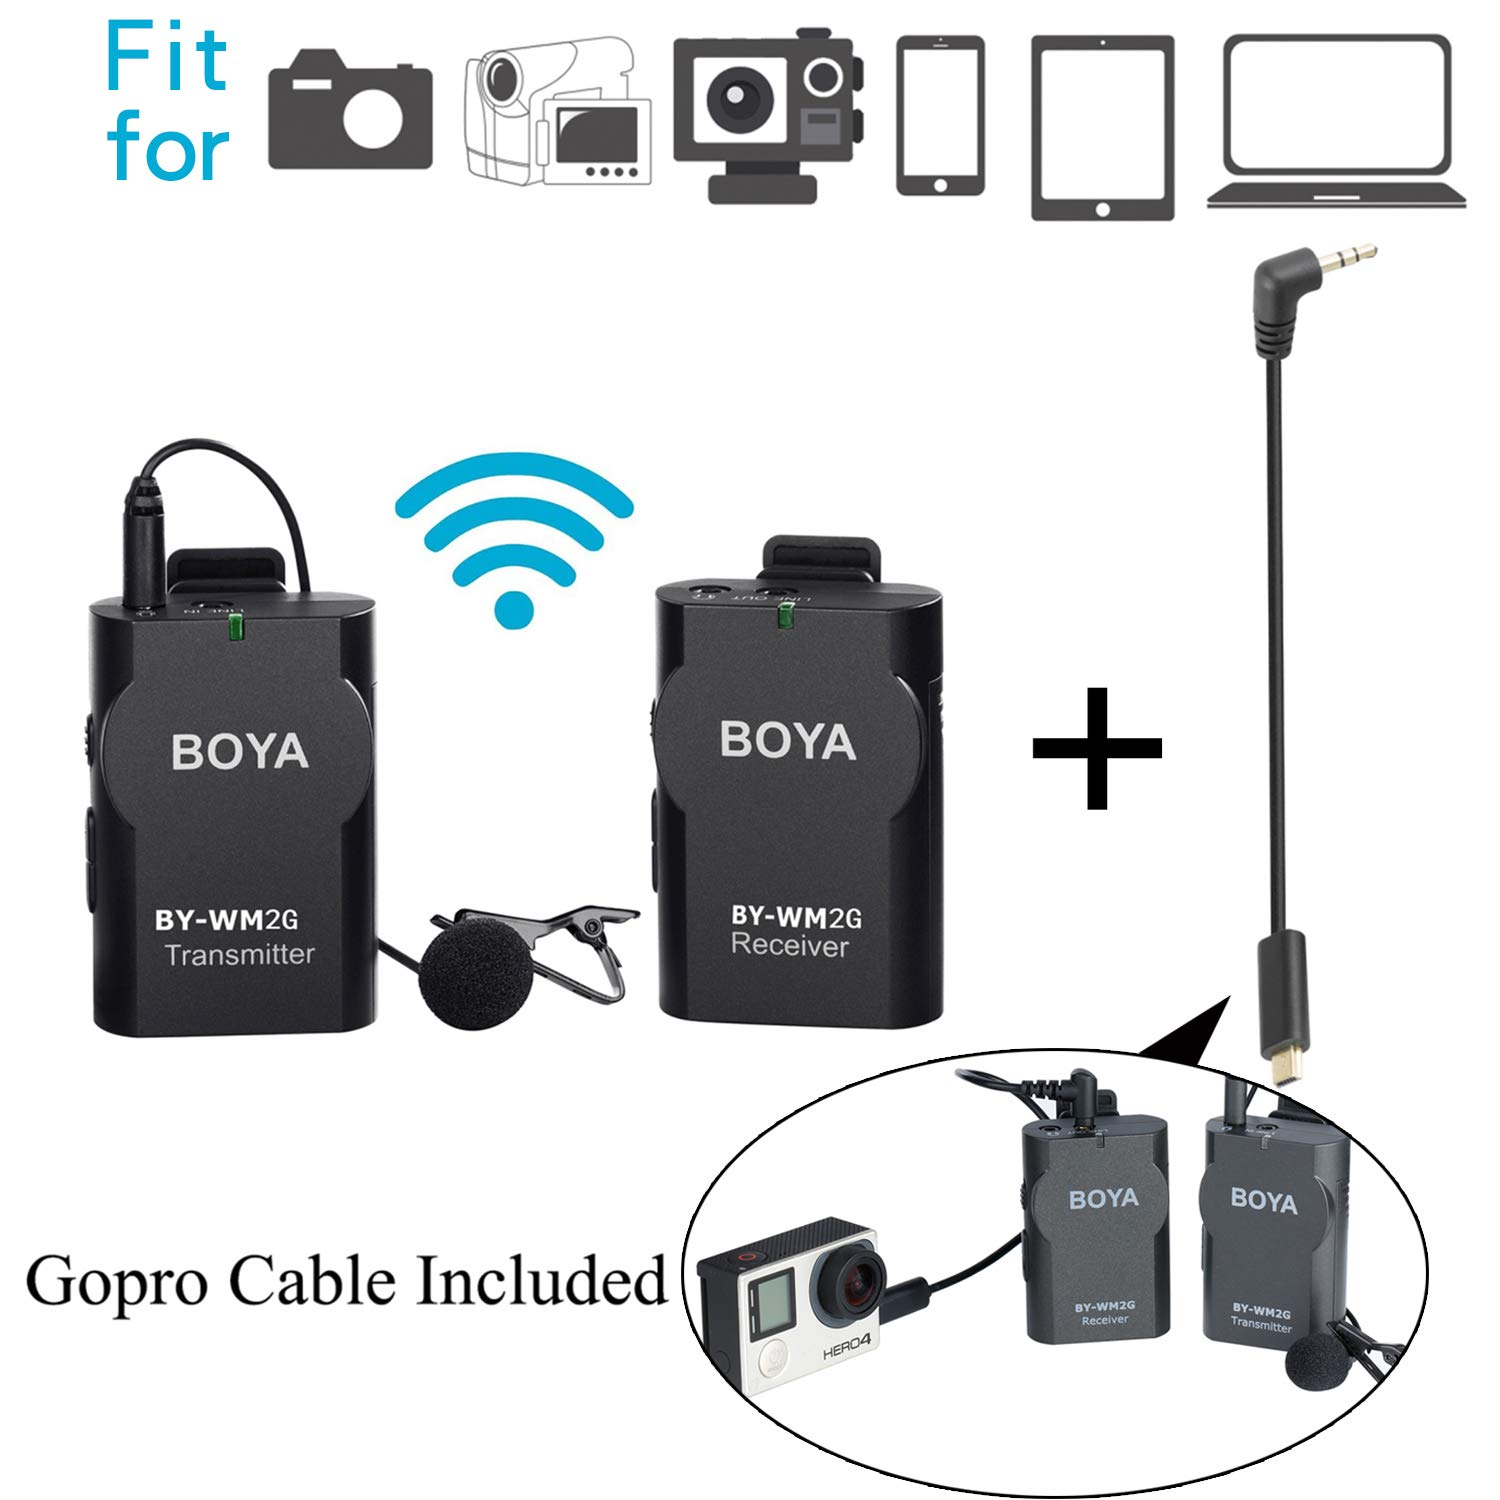 BOYA 3.5mm Lavalier Wireless Microphone Mic with Real-time Monitor for IOS Smartphone iPad Tablet DSLR Camera Sony RX0 Camcorder Audio Recorder PC Audio/Video (2 Foam Protectors Included) BY-WM4